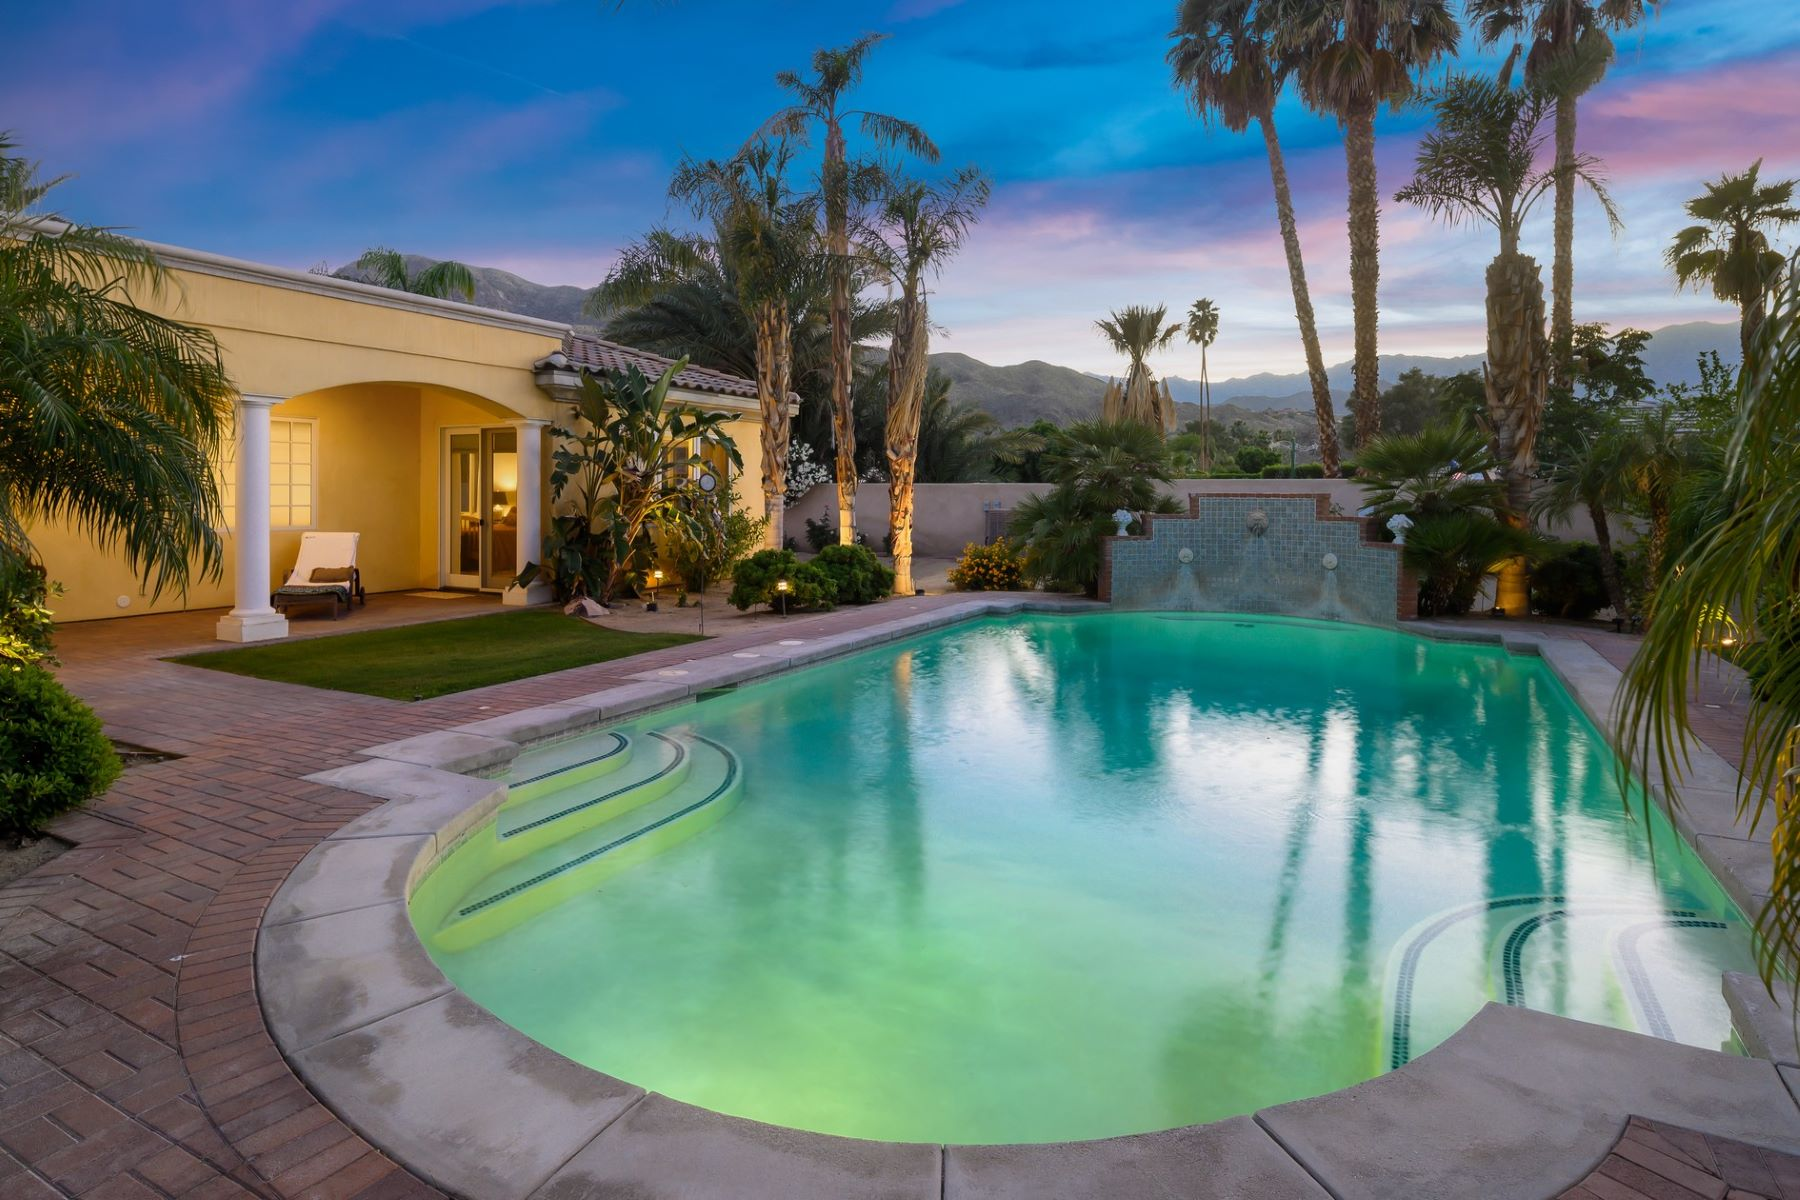 Single Family Homes for Sale at 38785 Peterson Road Rancho Mirage, California 92270 United States